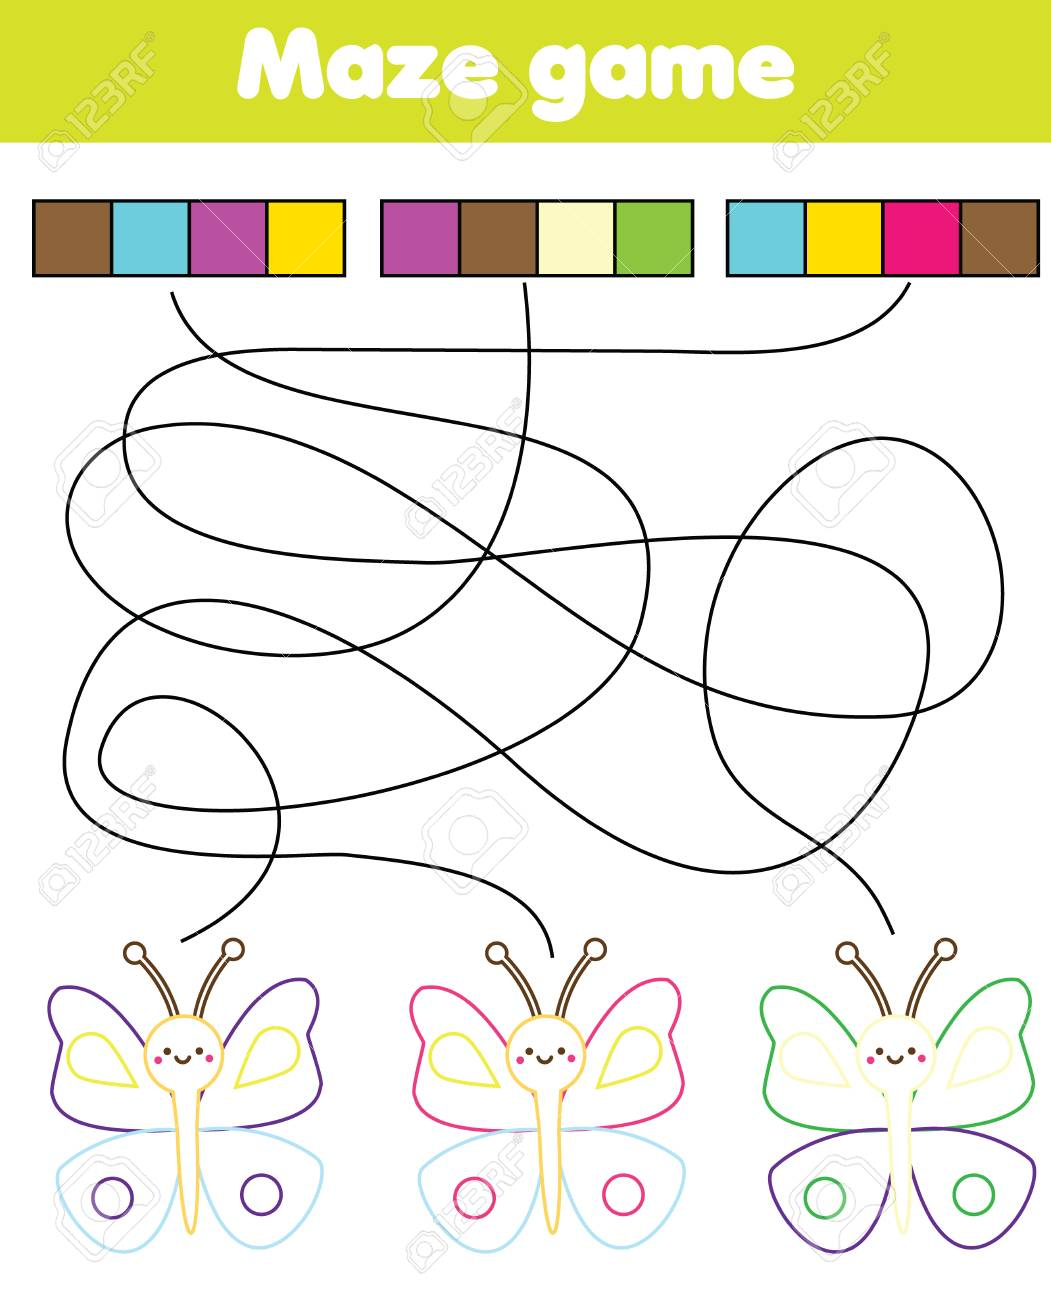 Connect The Colors >> Maze Game For Children Connect Colors And Butterflies Labyrinth